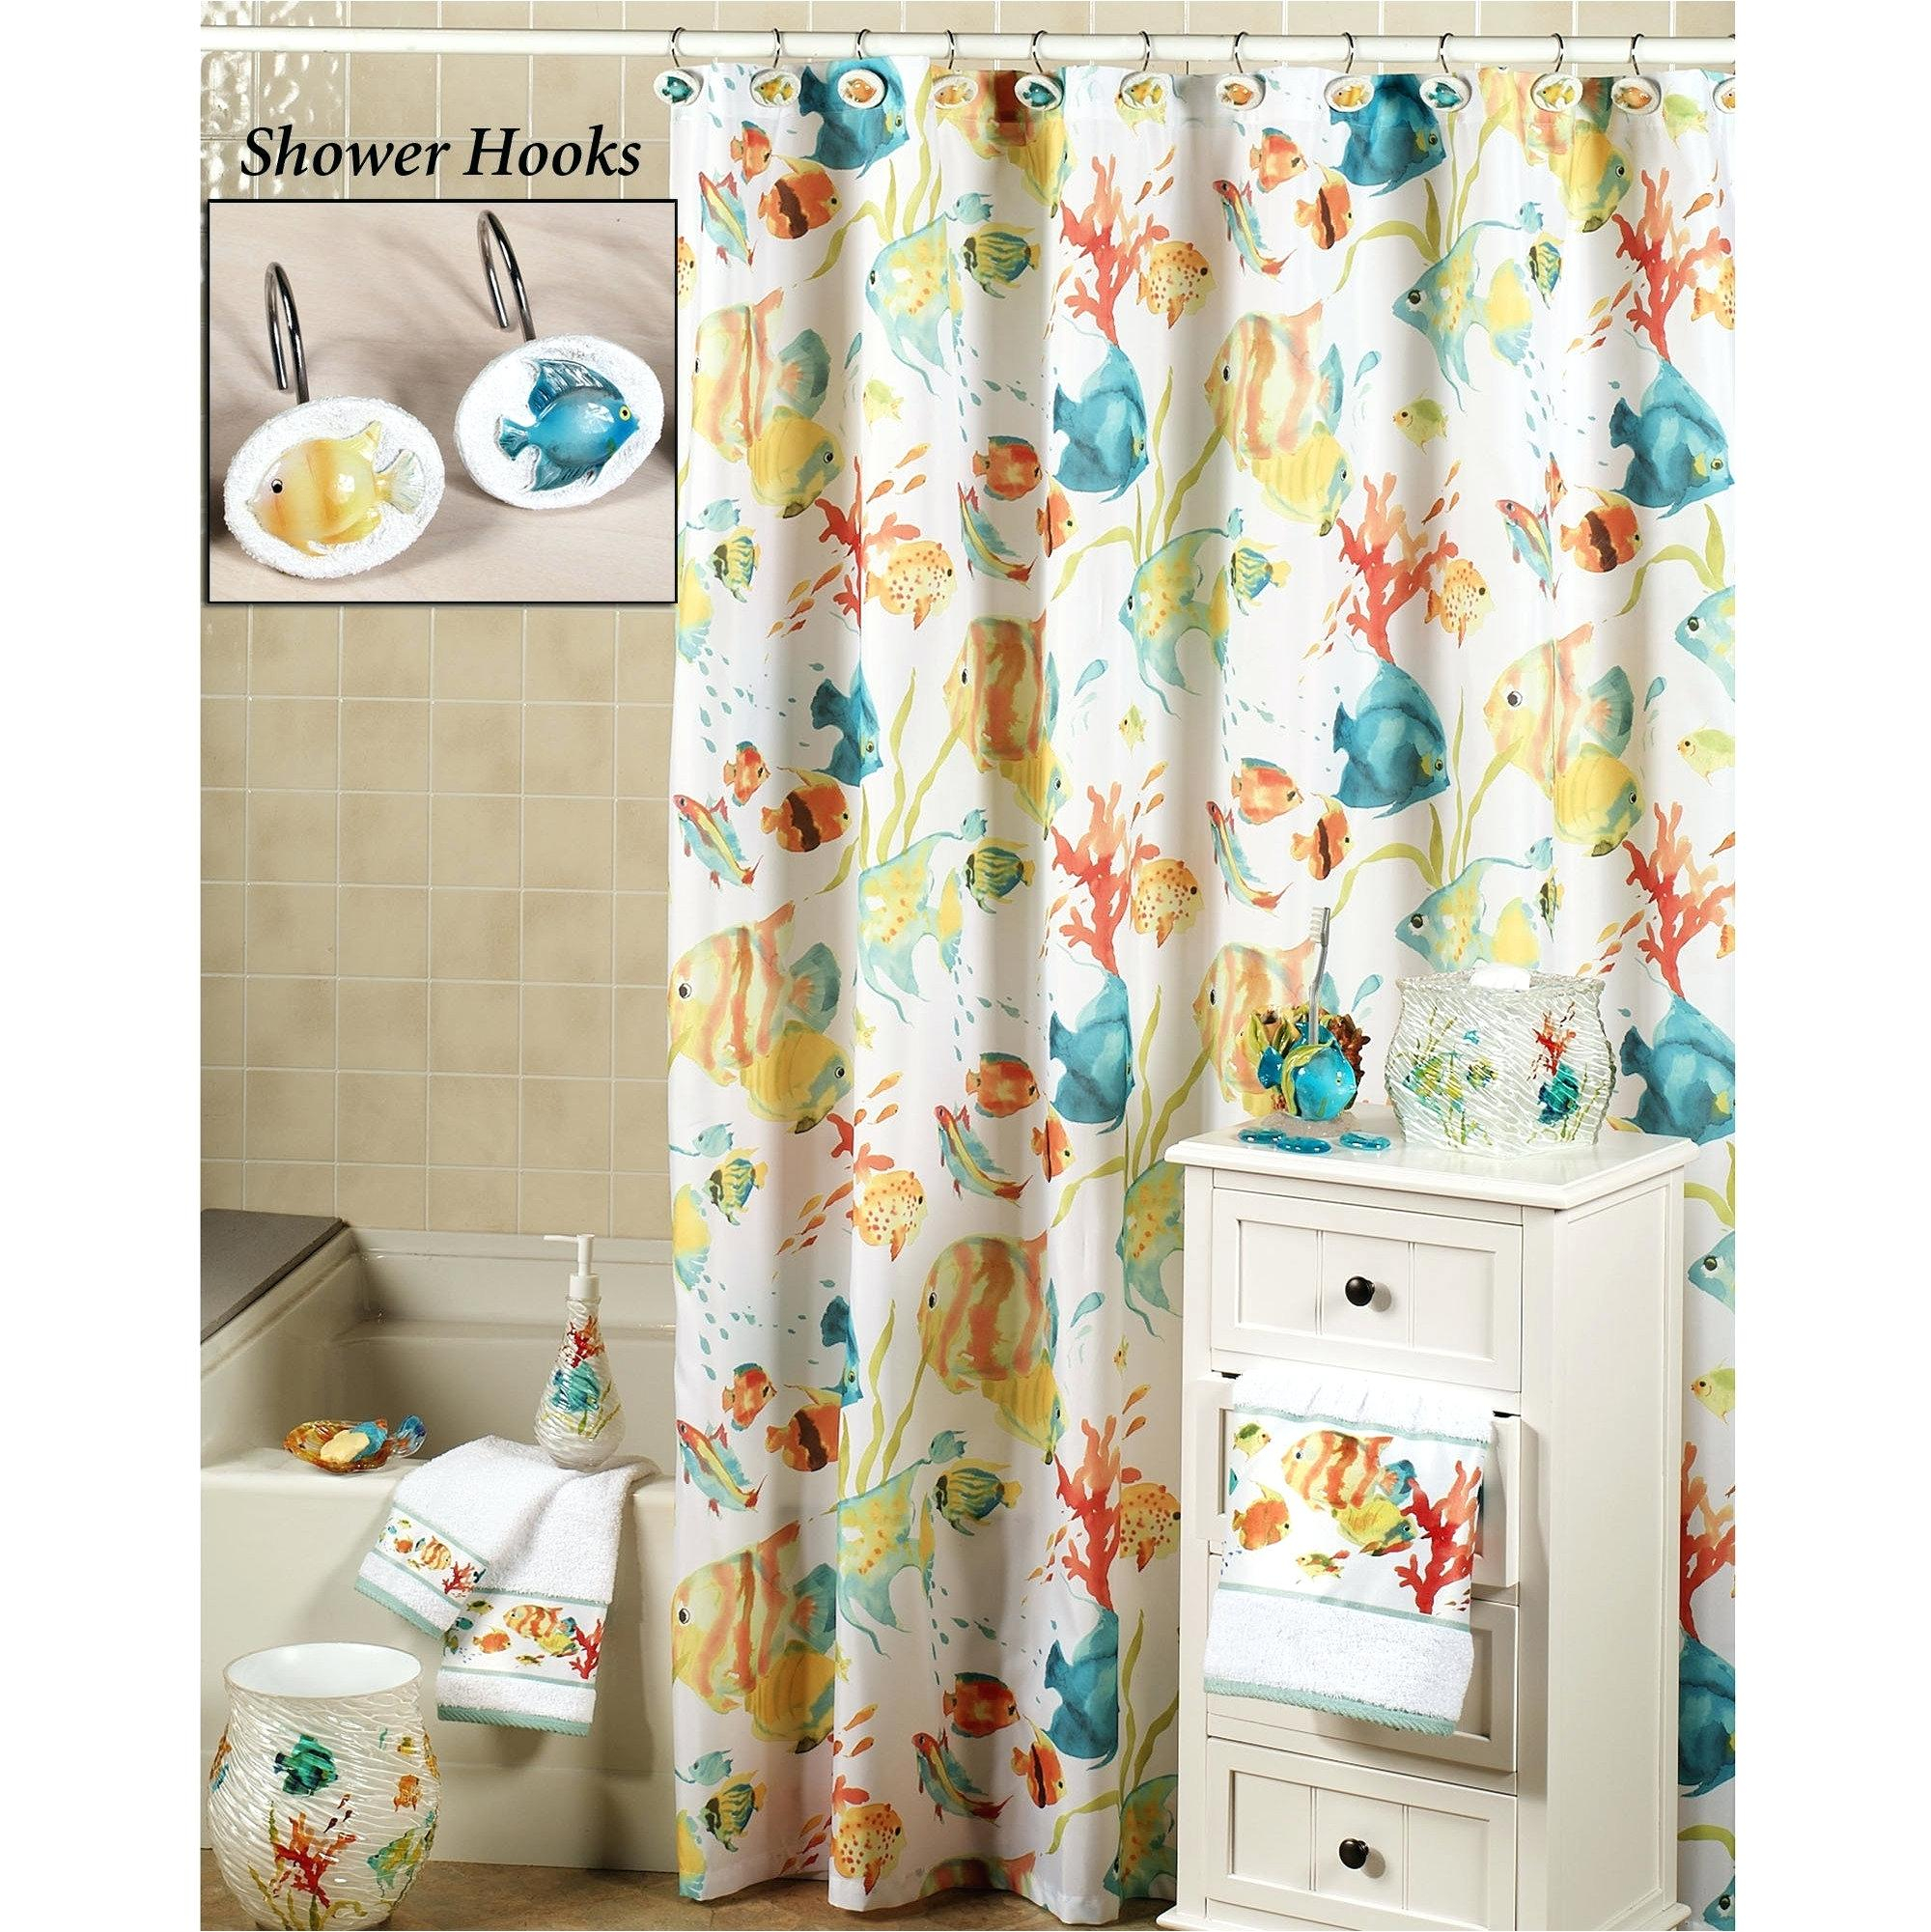 Deny Designs Shower Curtain Liner • Shower Curtains Ideas